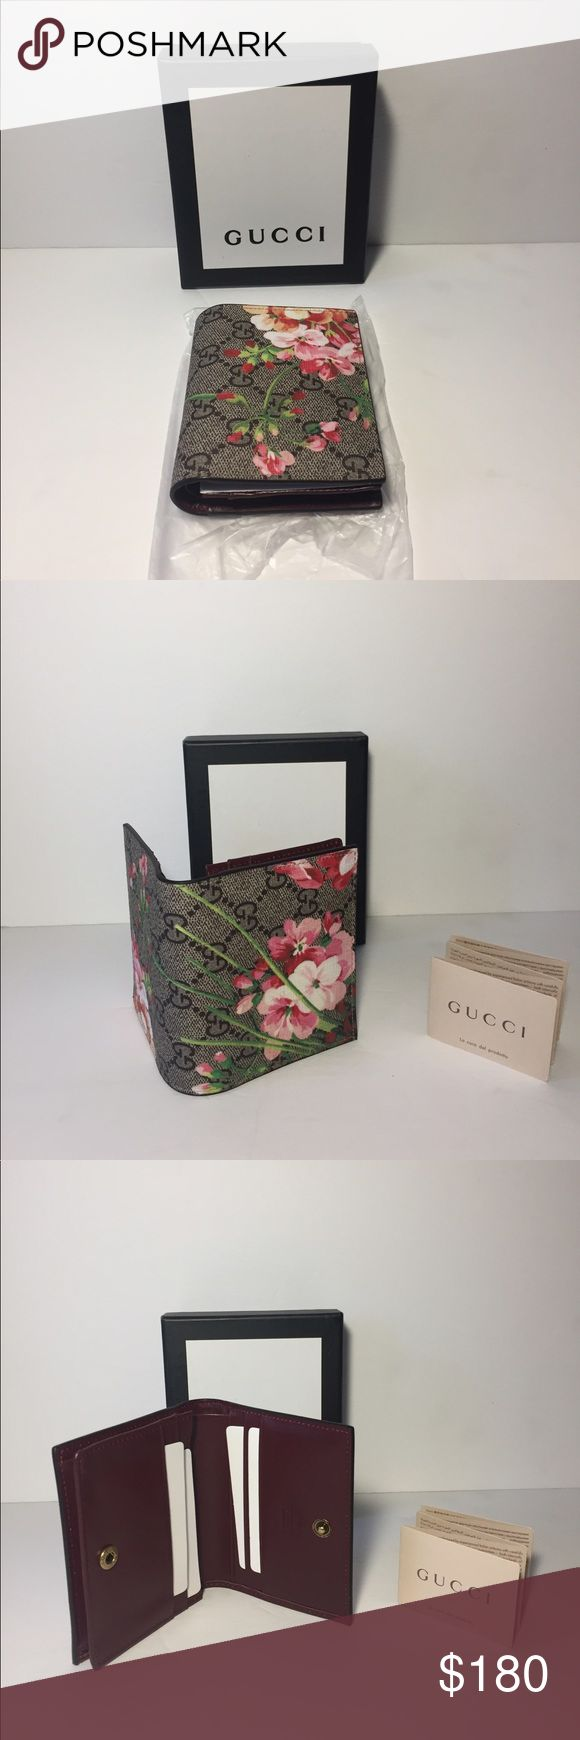 Gucci Blooms Wallet Authentic Gucci GG Supreme Wallet. New. Comes with box Gucci Bags Wallets